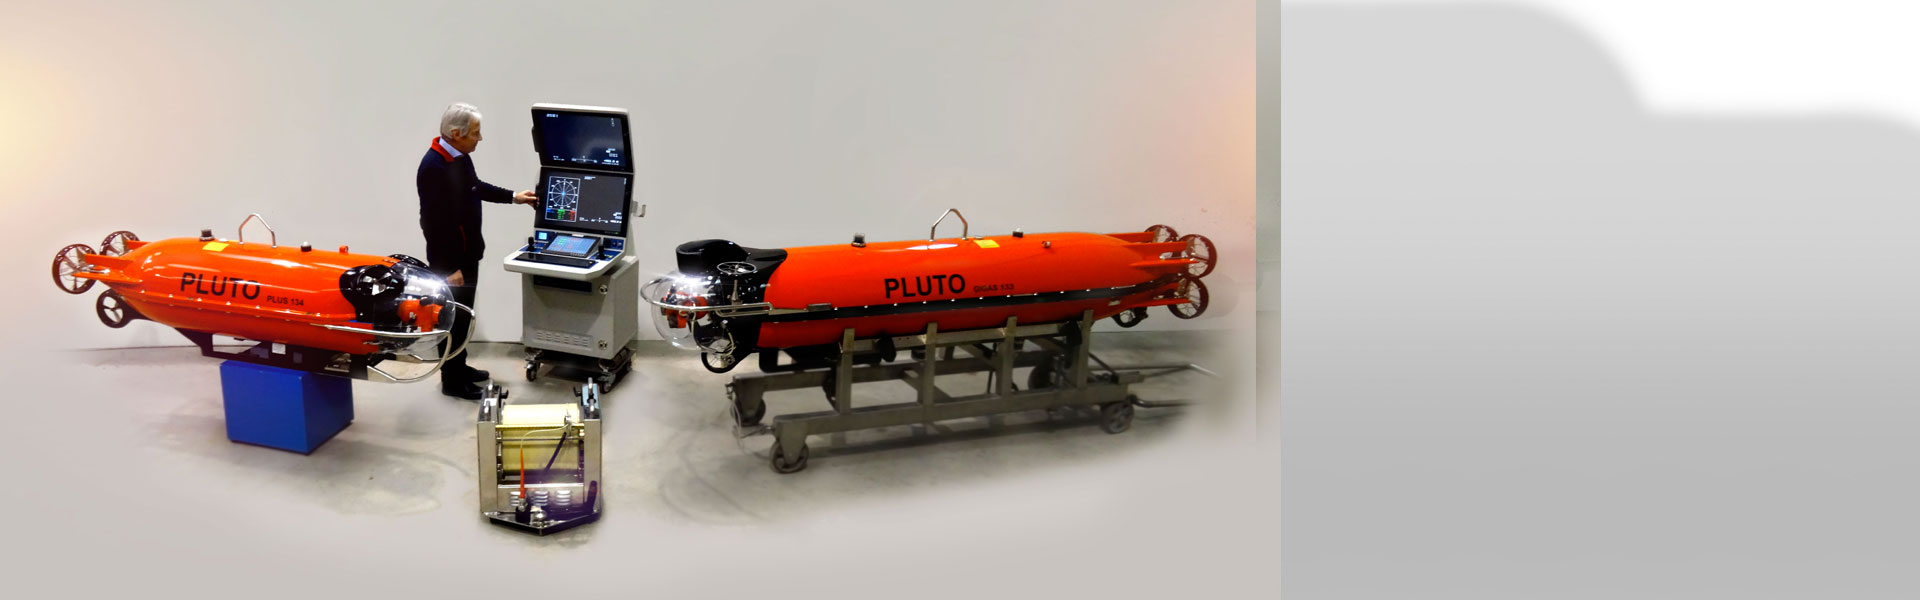 ROV system for defence and governmental applications